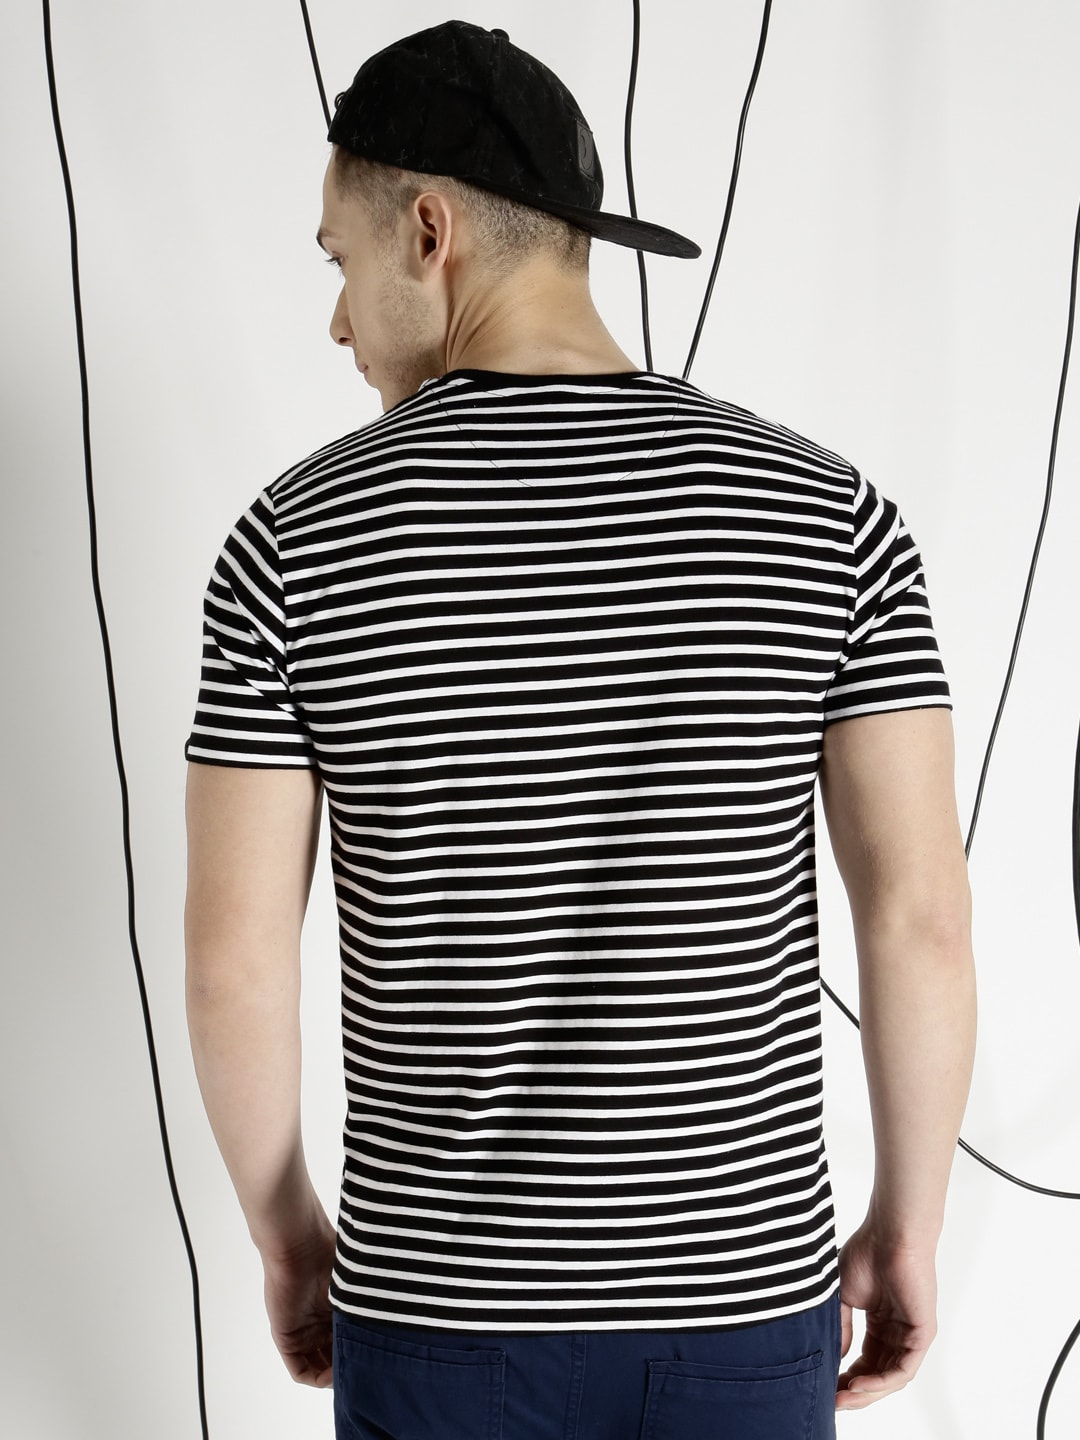 Black and white striped t shirt xxl -  Black And White Striped T Shirt Xxl 15 Download